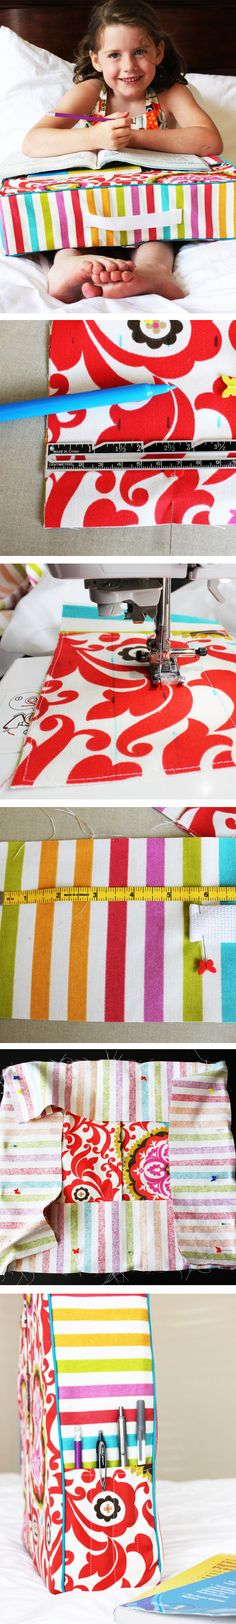 Love, love, love this project from @Amy Bell {Positively Splendid}! Craft your own study pillow with her awesome free tutorial! #creativitymadesimple #cre8simple